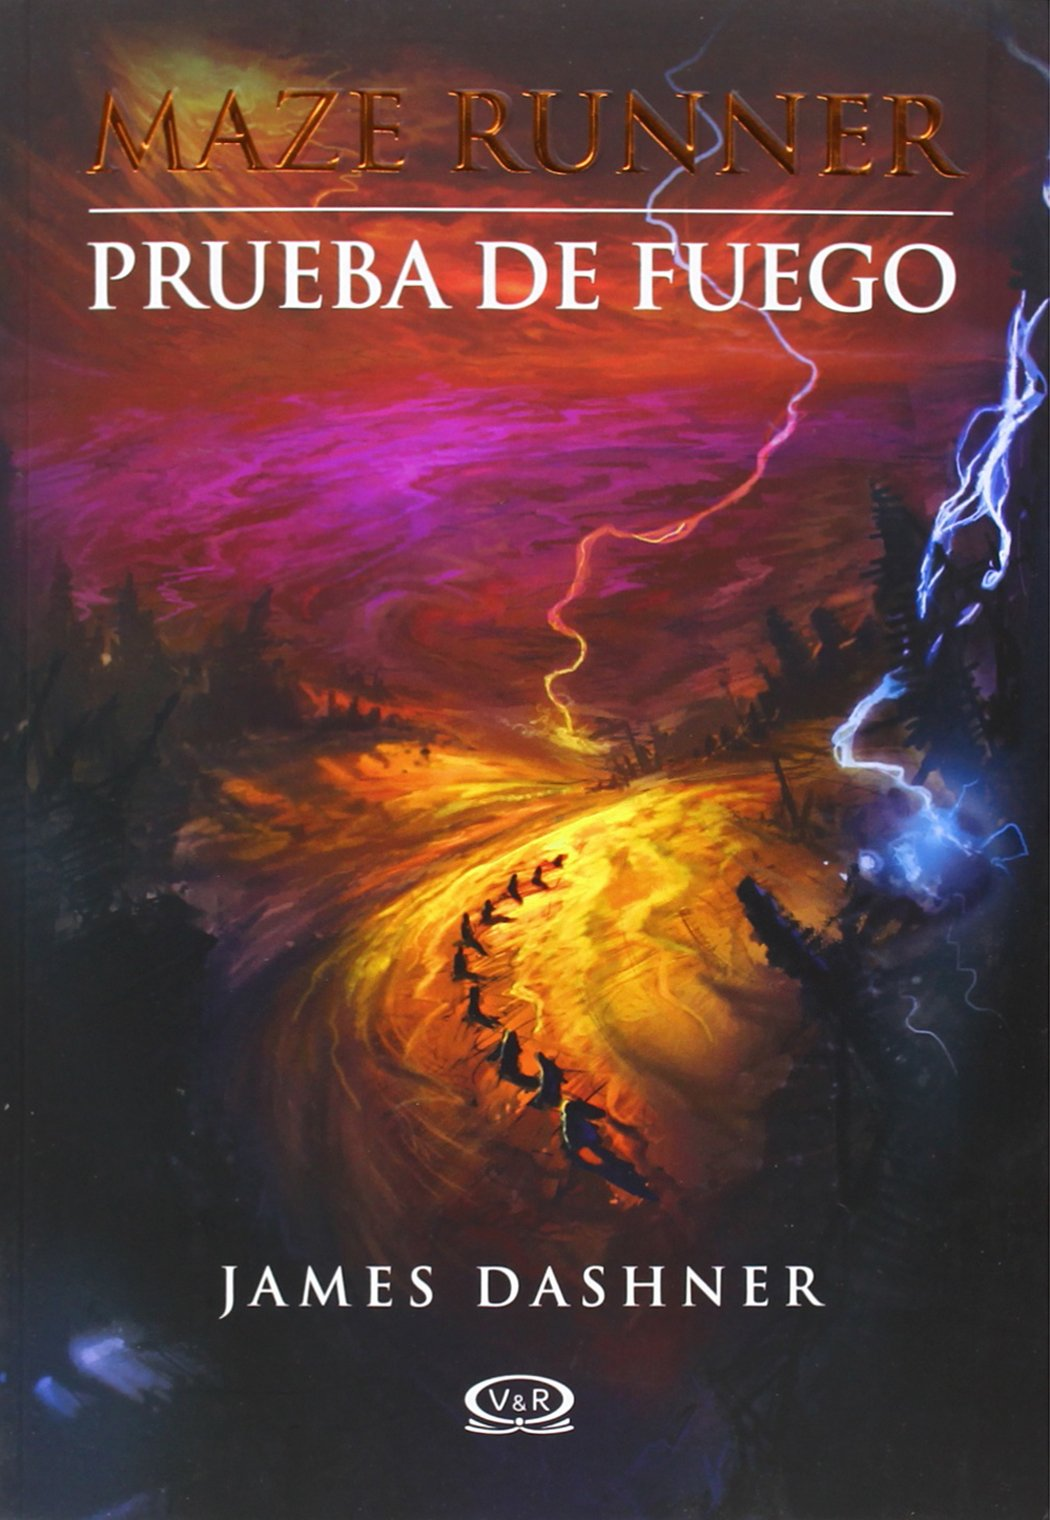 Buy Prueba De Fuego The Scorch Trials Maze Runner Book Online At